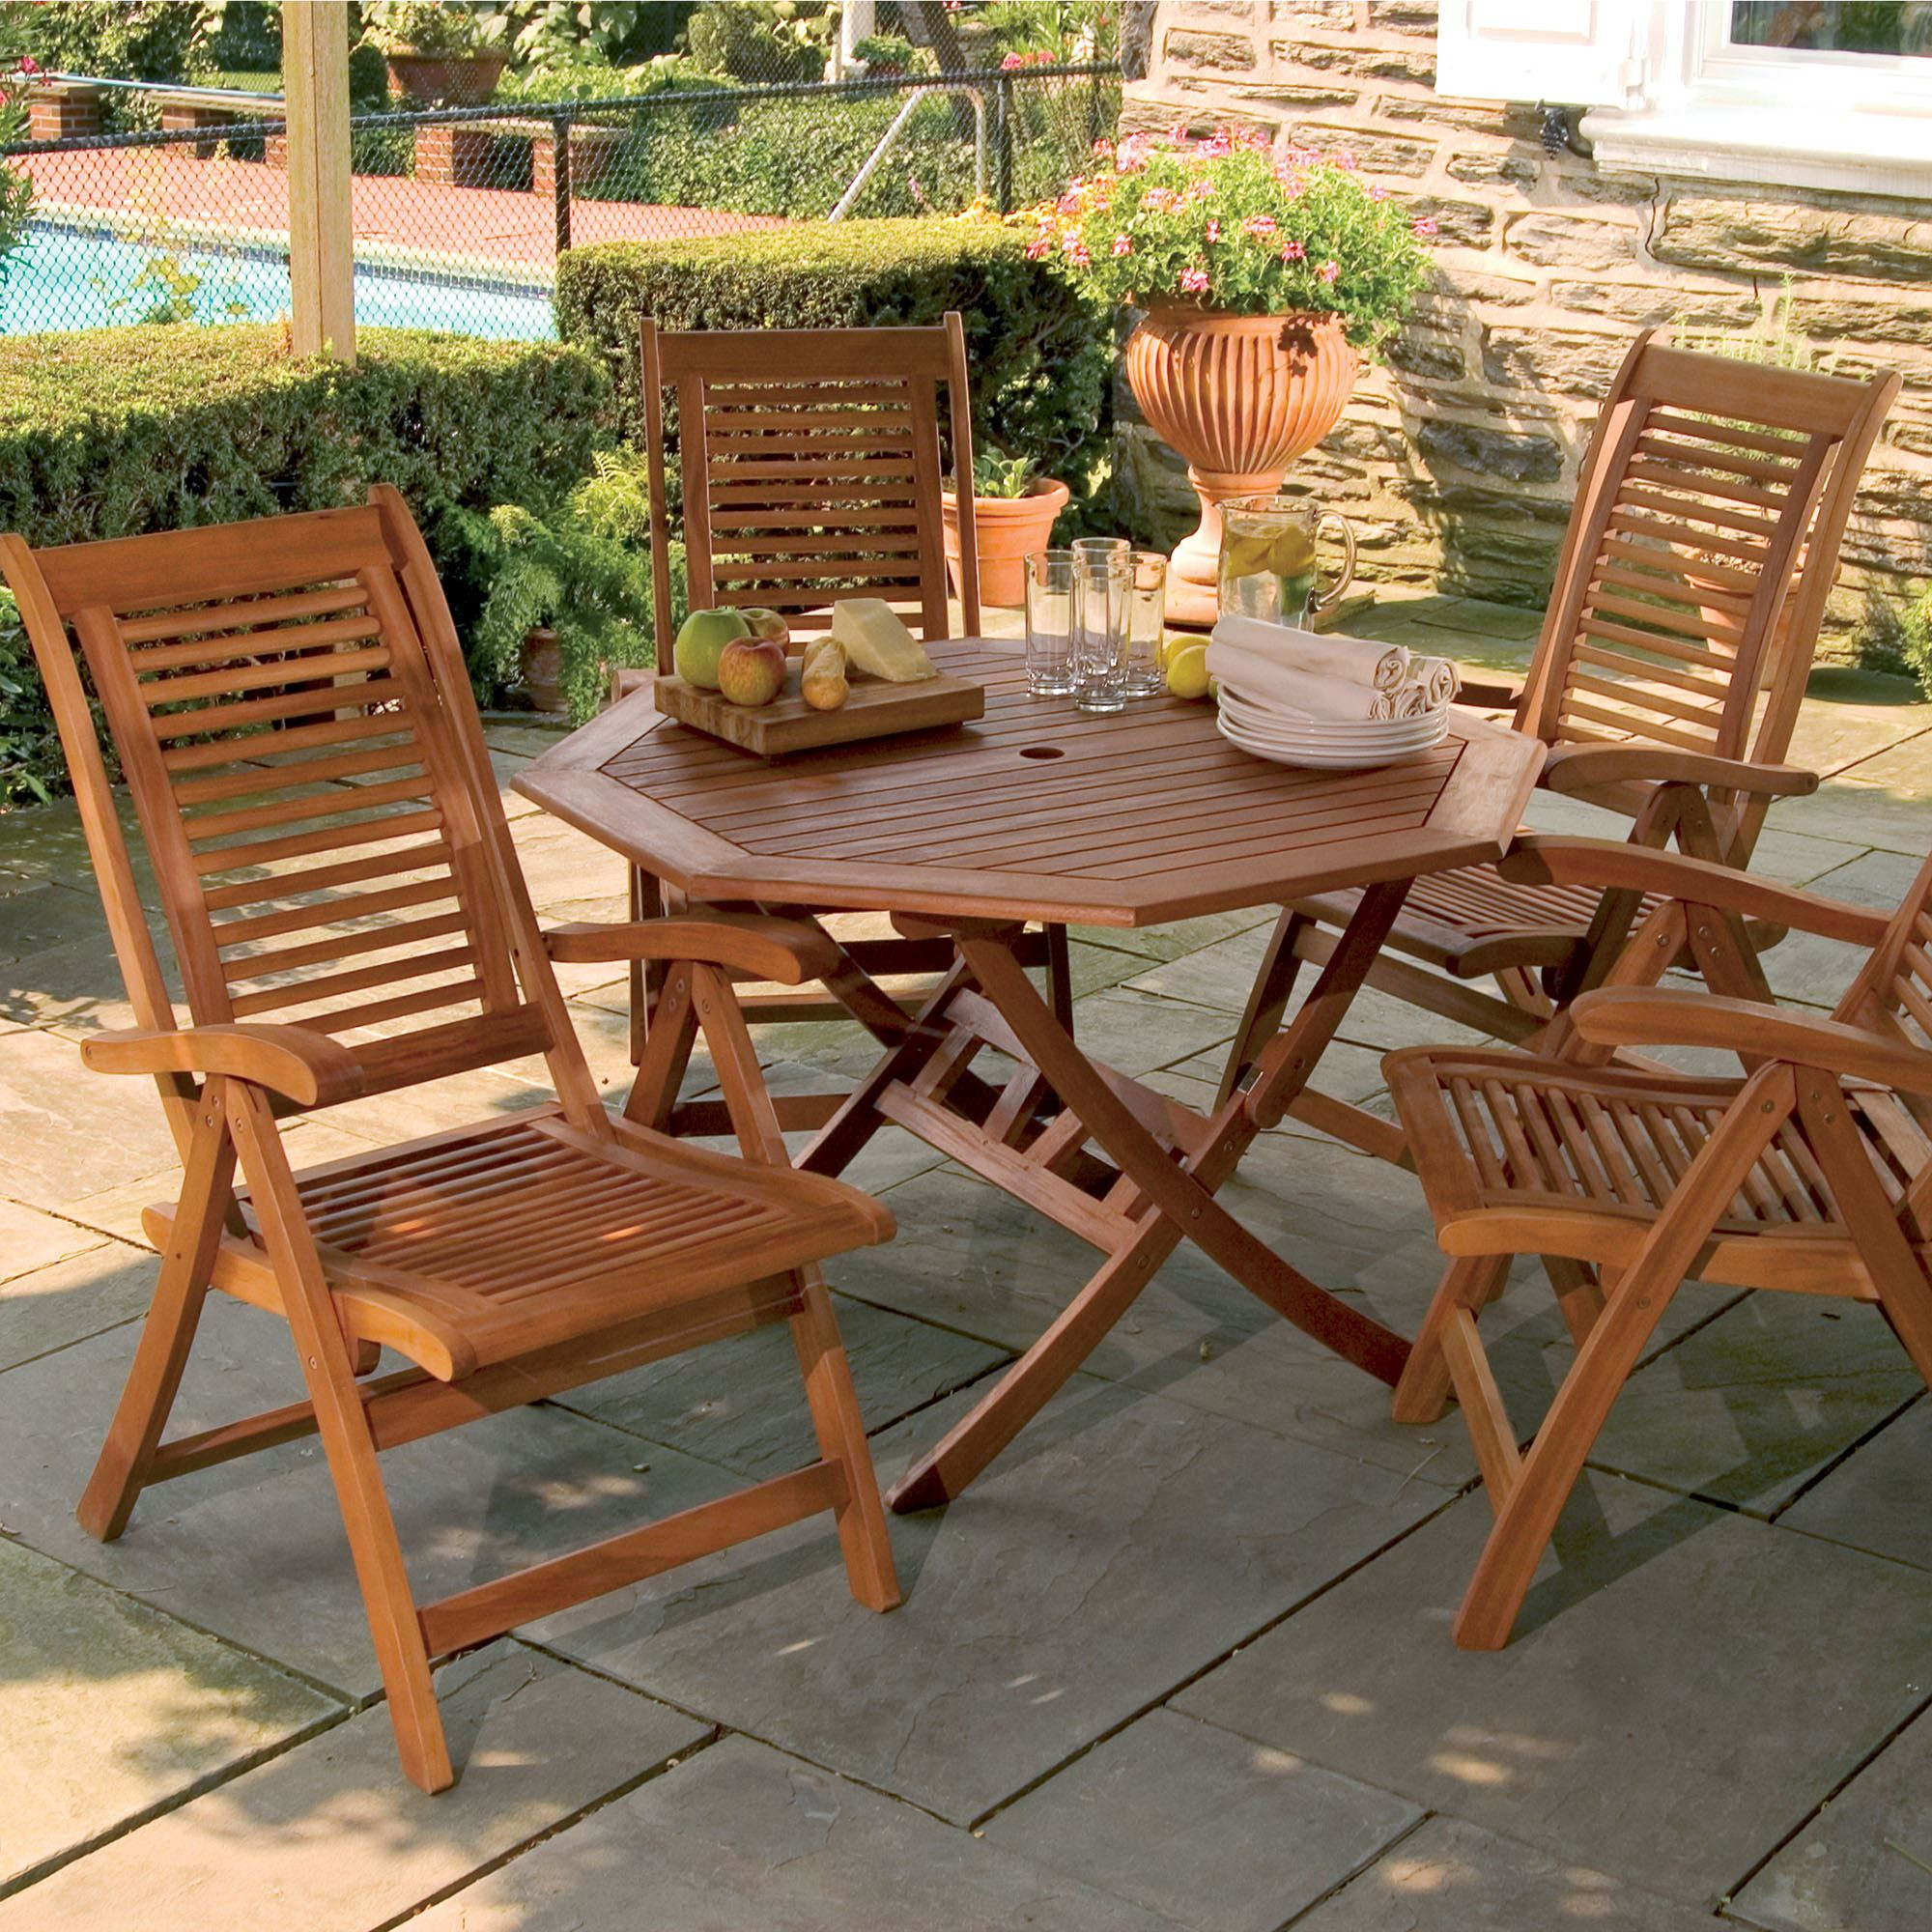 Best ideas about Wooden Patio Furniture . Save or Pin Lanai Wood Patio Furniture Now.